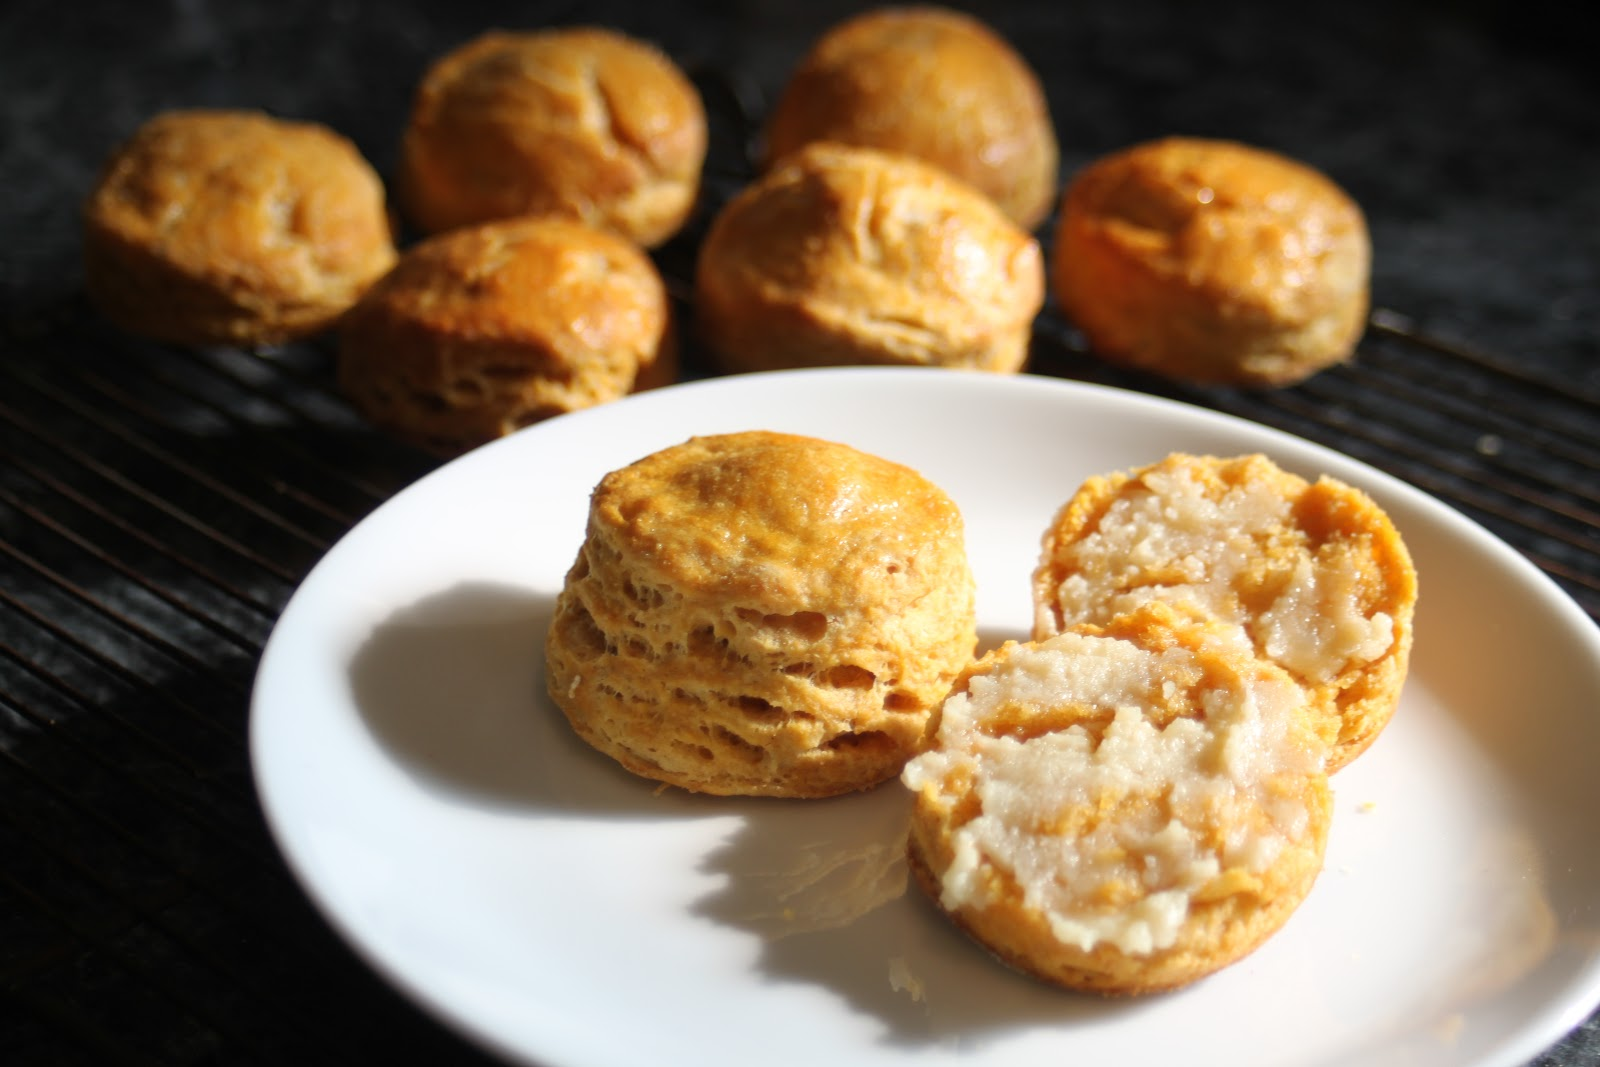 ... : Thanksgiving Inspiration - Sweet Potato Biscuits with Maple Butter